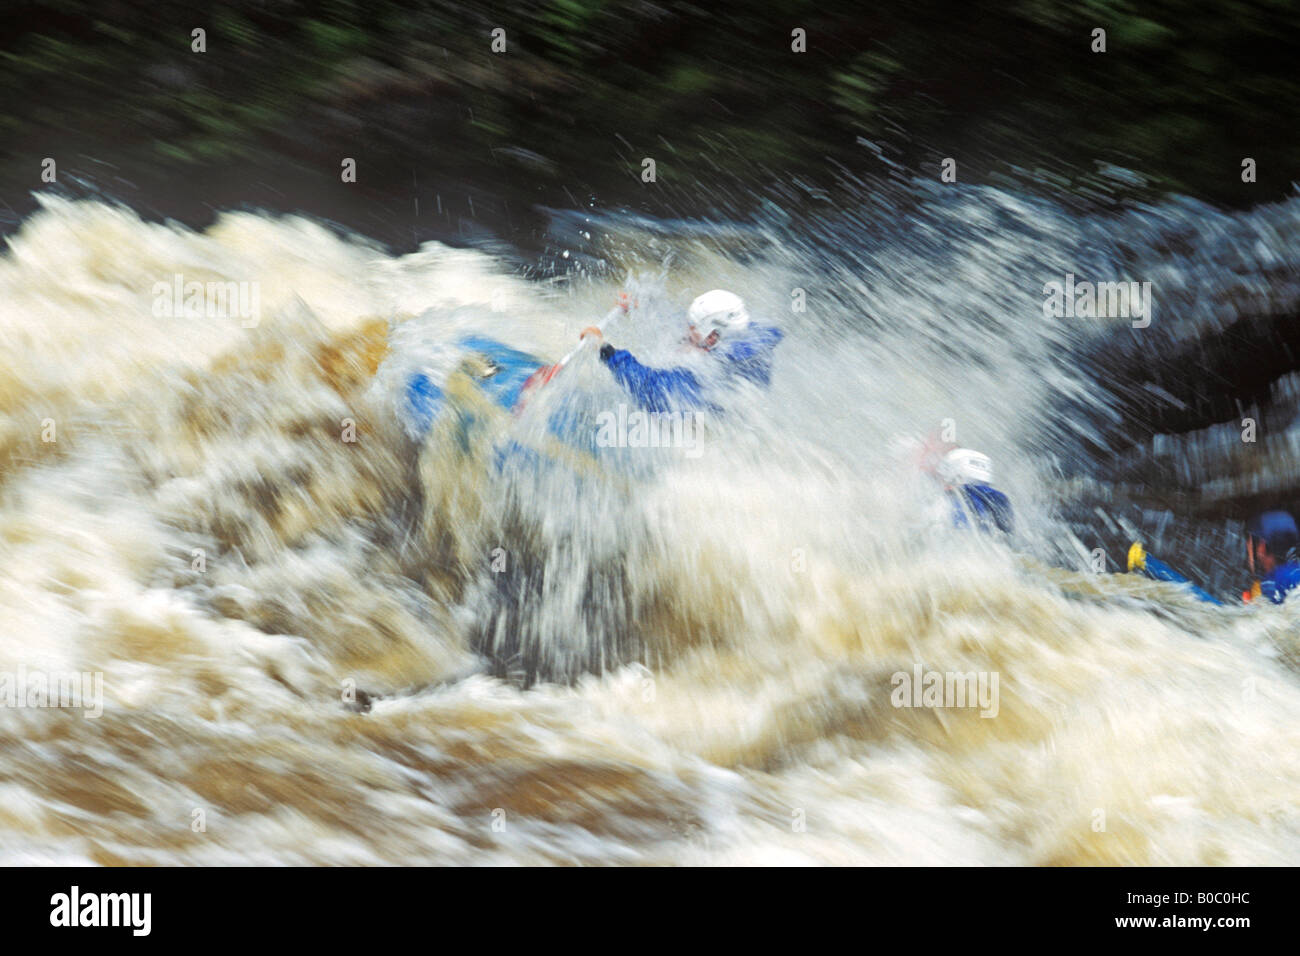 Rafting the Menominee River at Piers Gorge on the border of